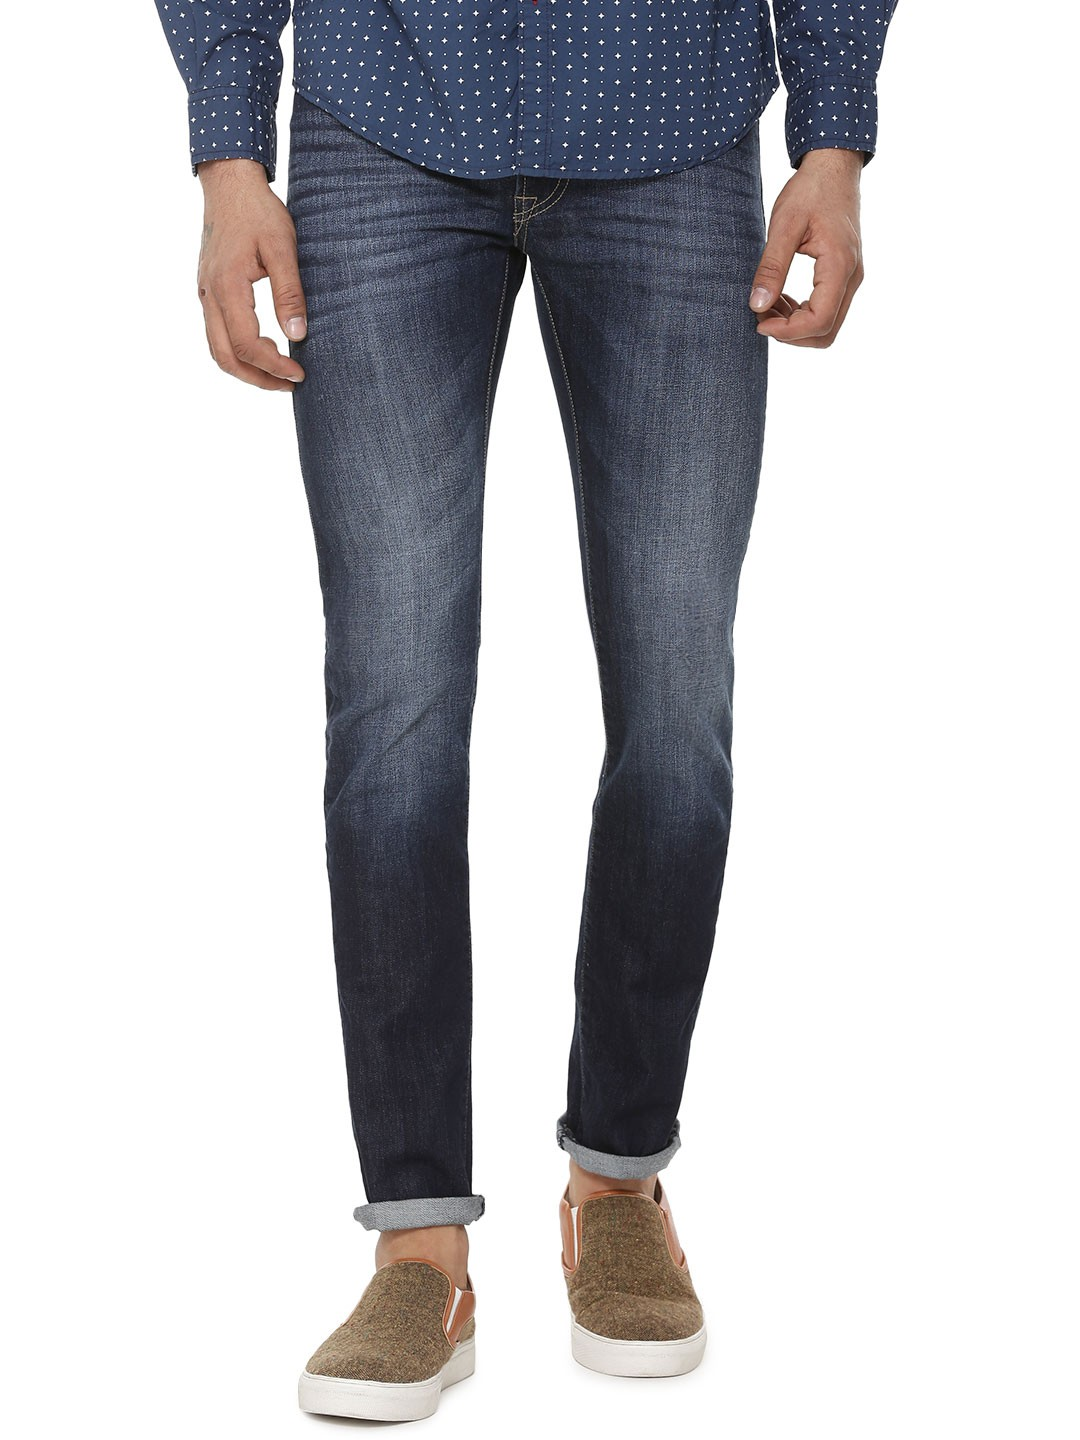 buy pepe jeans soho skinny jeans with whiskers for men. Black Bedroom Furniture Sets. Home Design Ideas